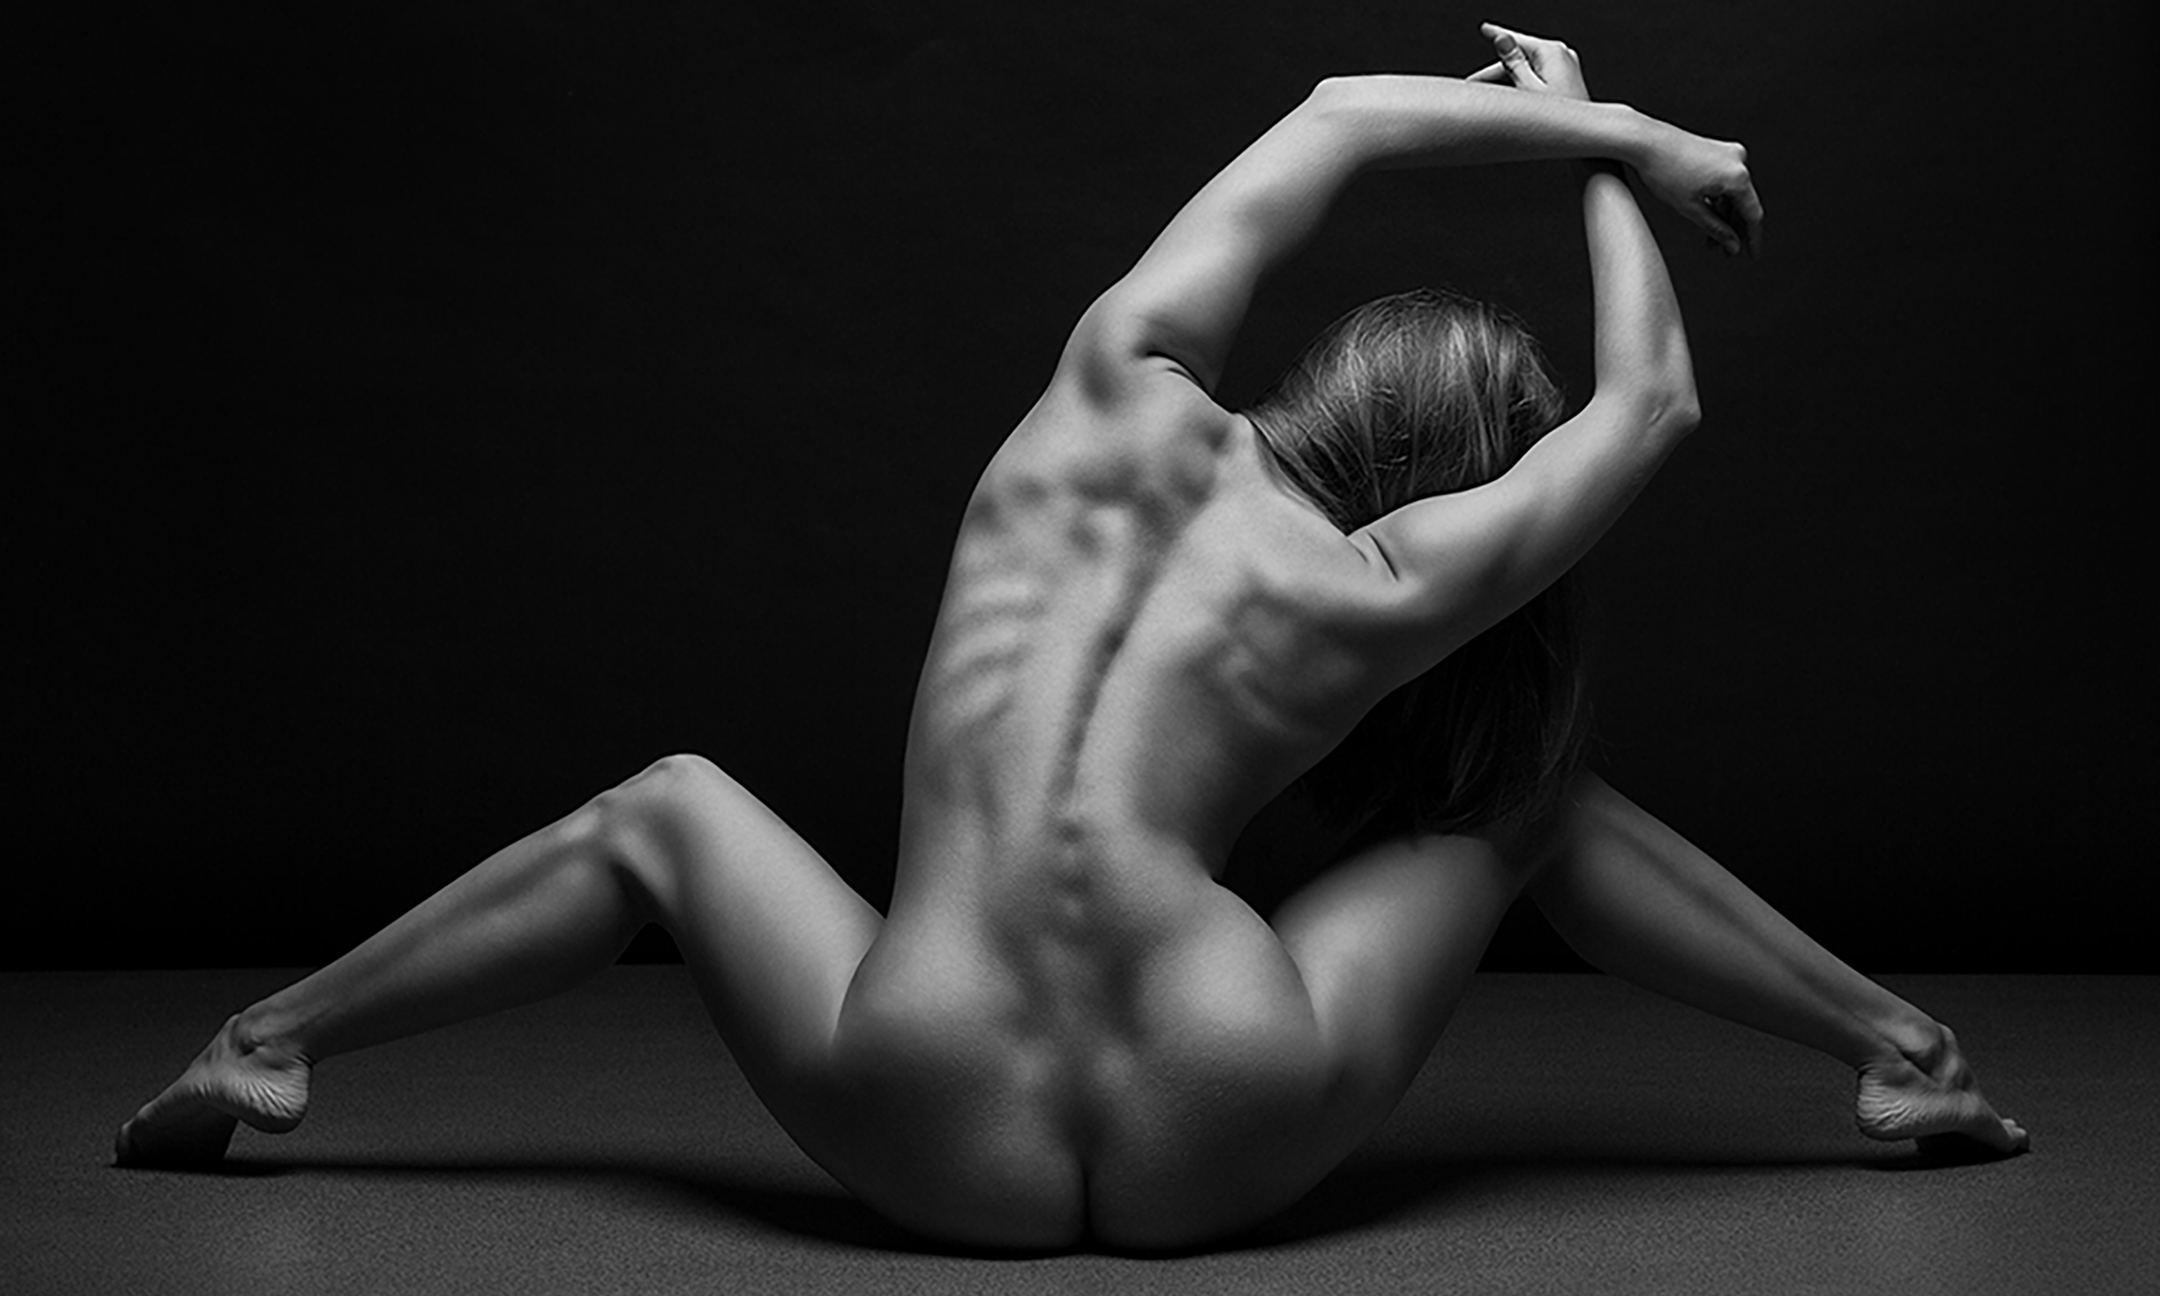 Woman Body Nude 3